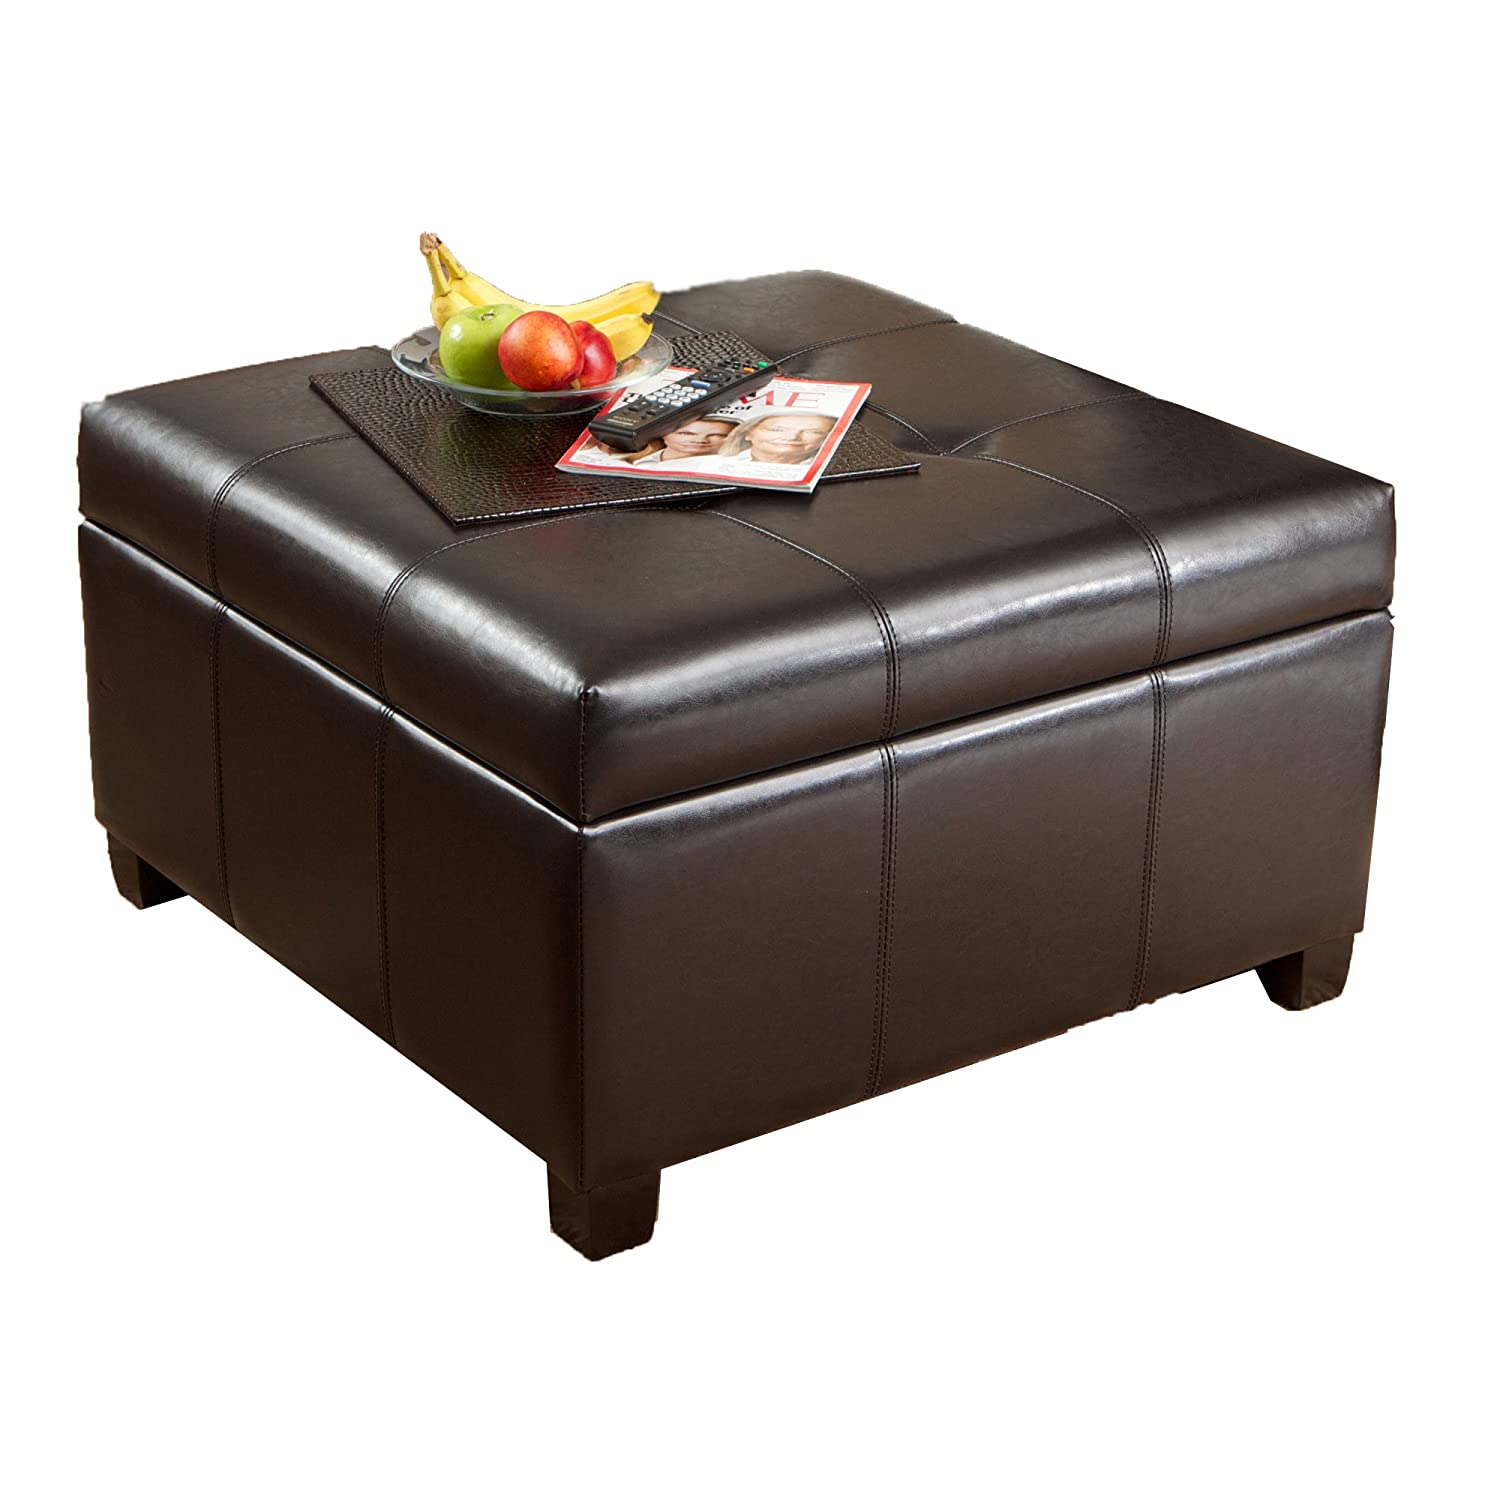 storage ottoman coffee table Amazon.com: Best Selling | Storage Ottoman | Coffee Table | Square  storage ottoman coffee table